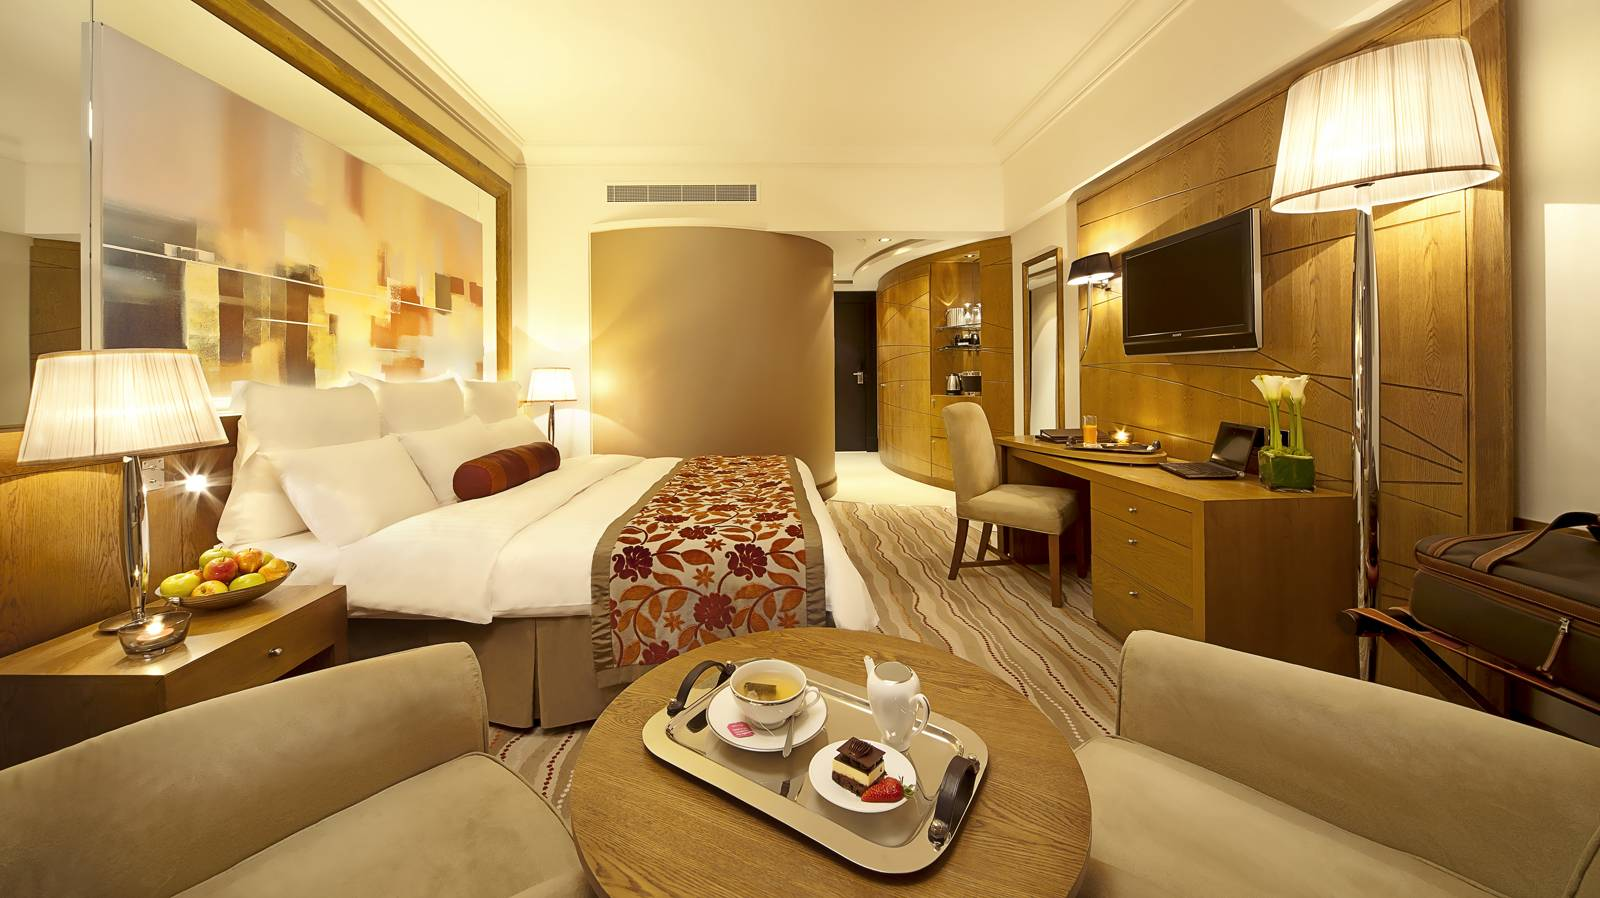 Gulf Hotel Bahrain   Luxury 5 Star Hotel In Bahrain   Luxury Room